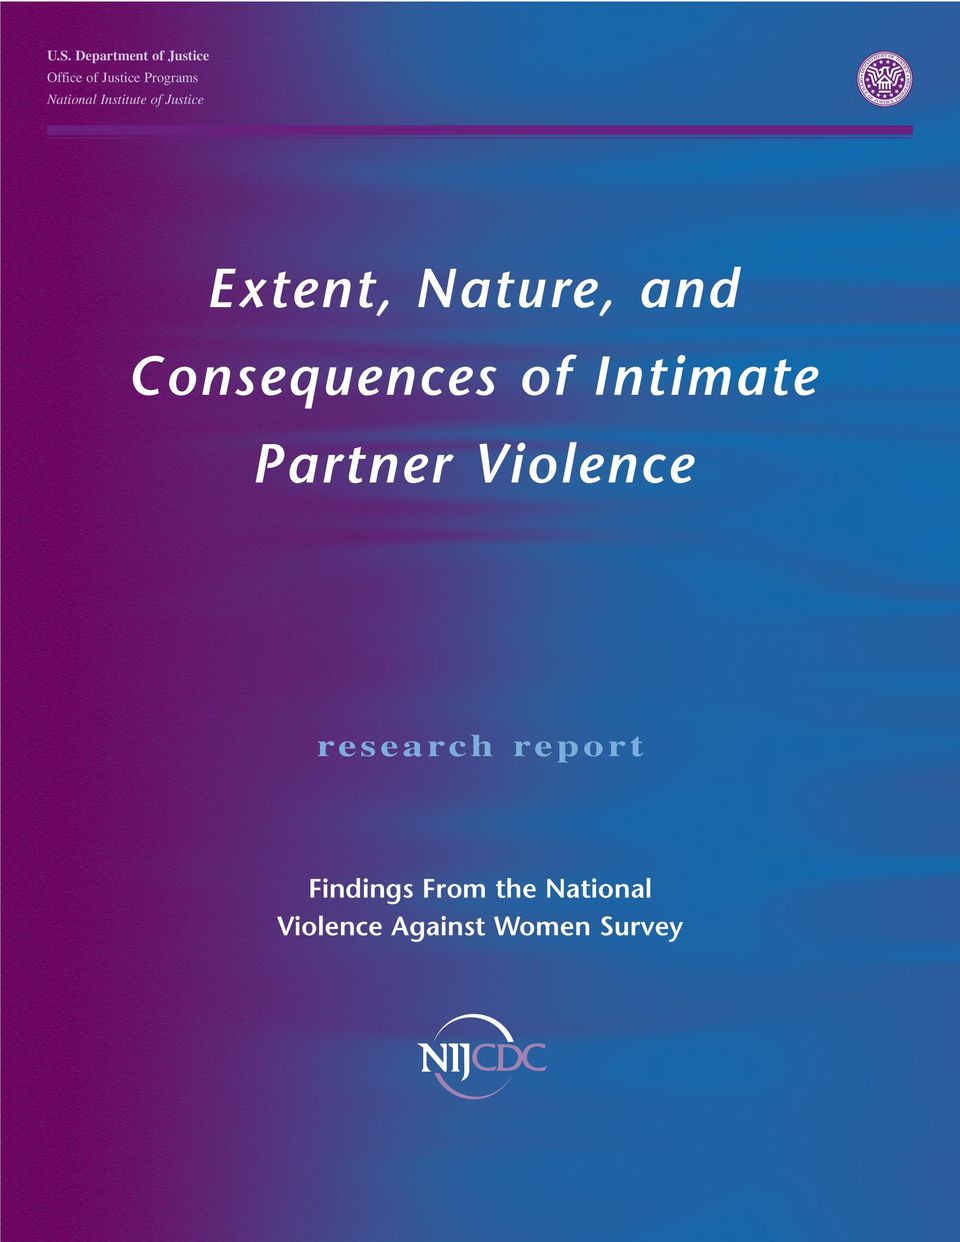 Consequences of Intimate Partner Violence research